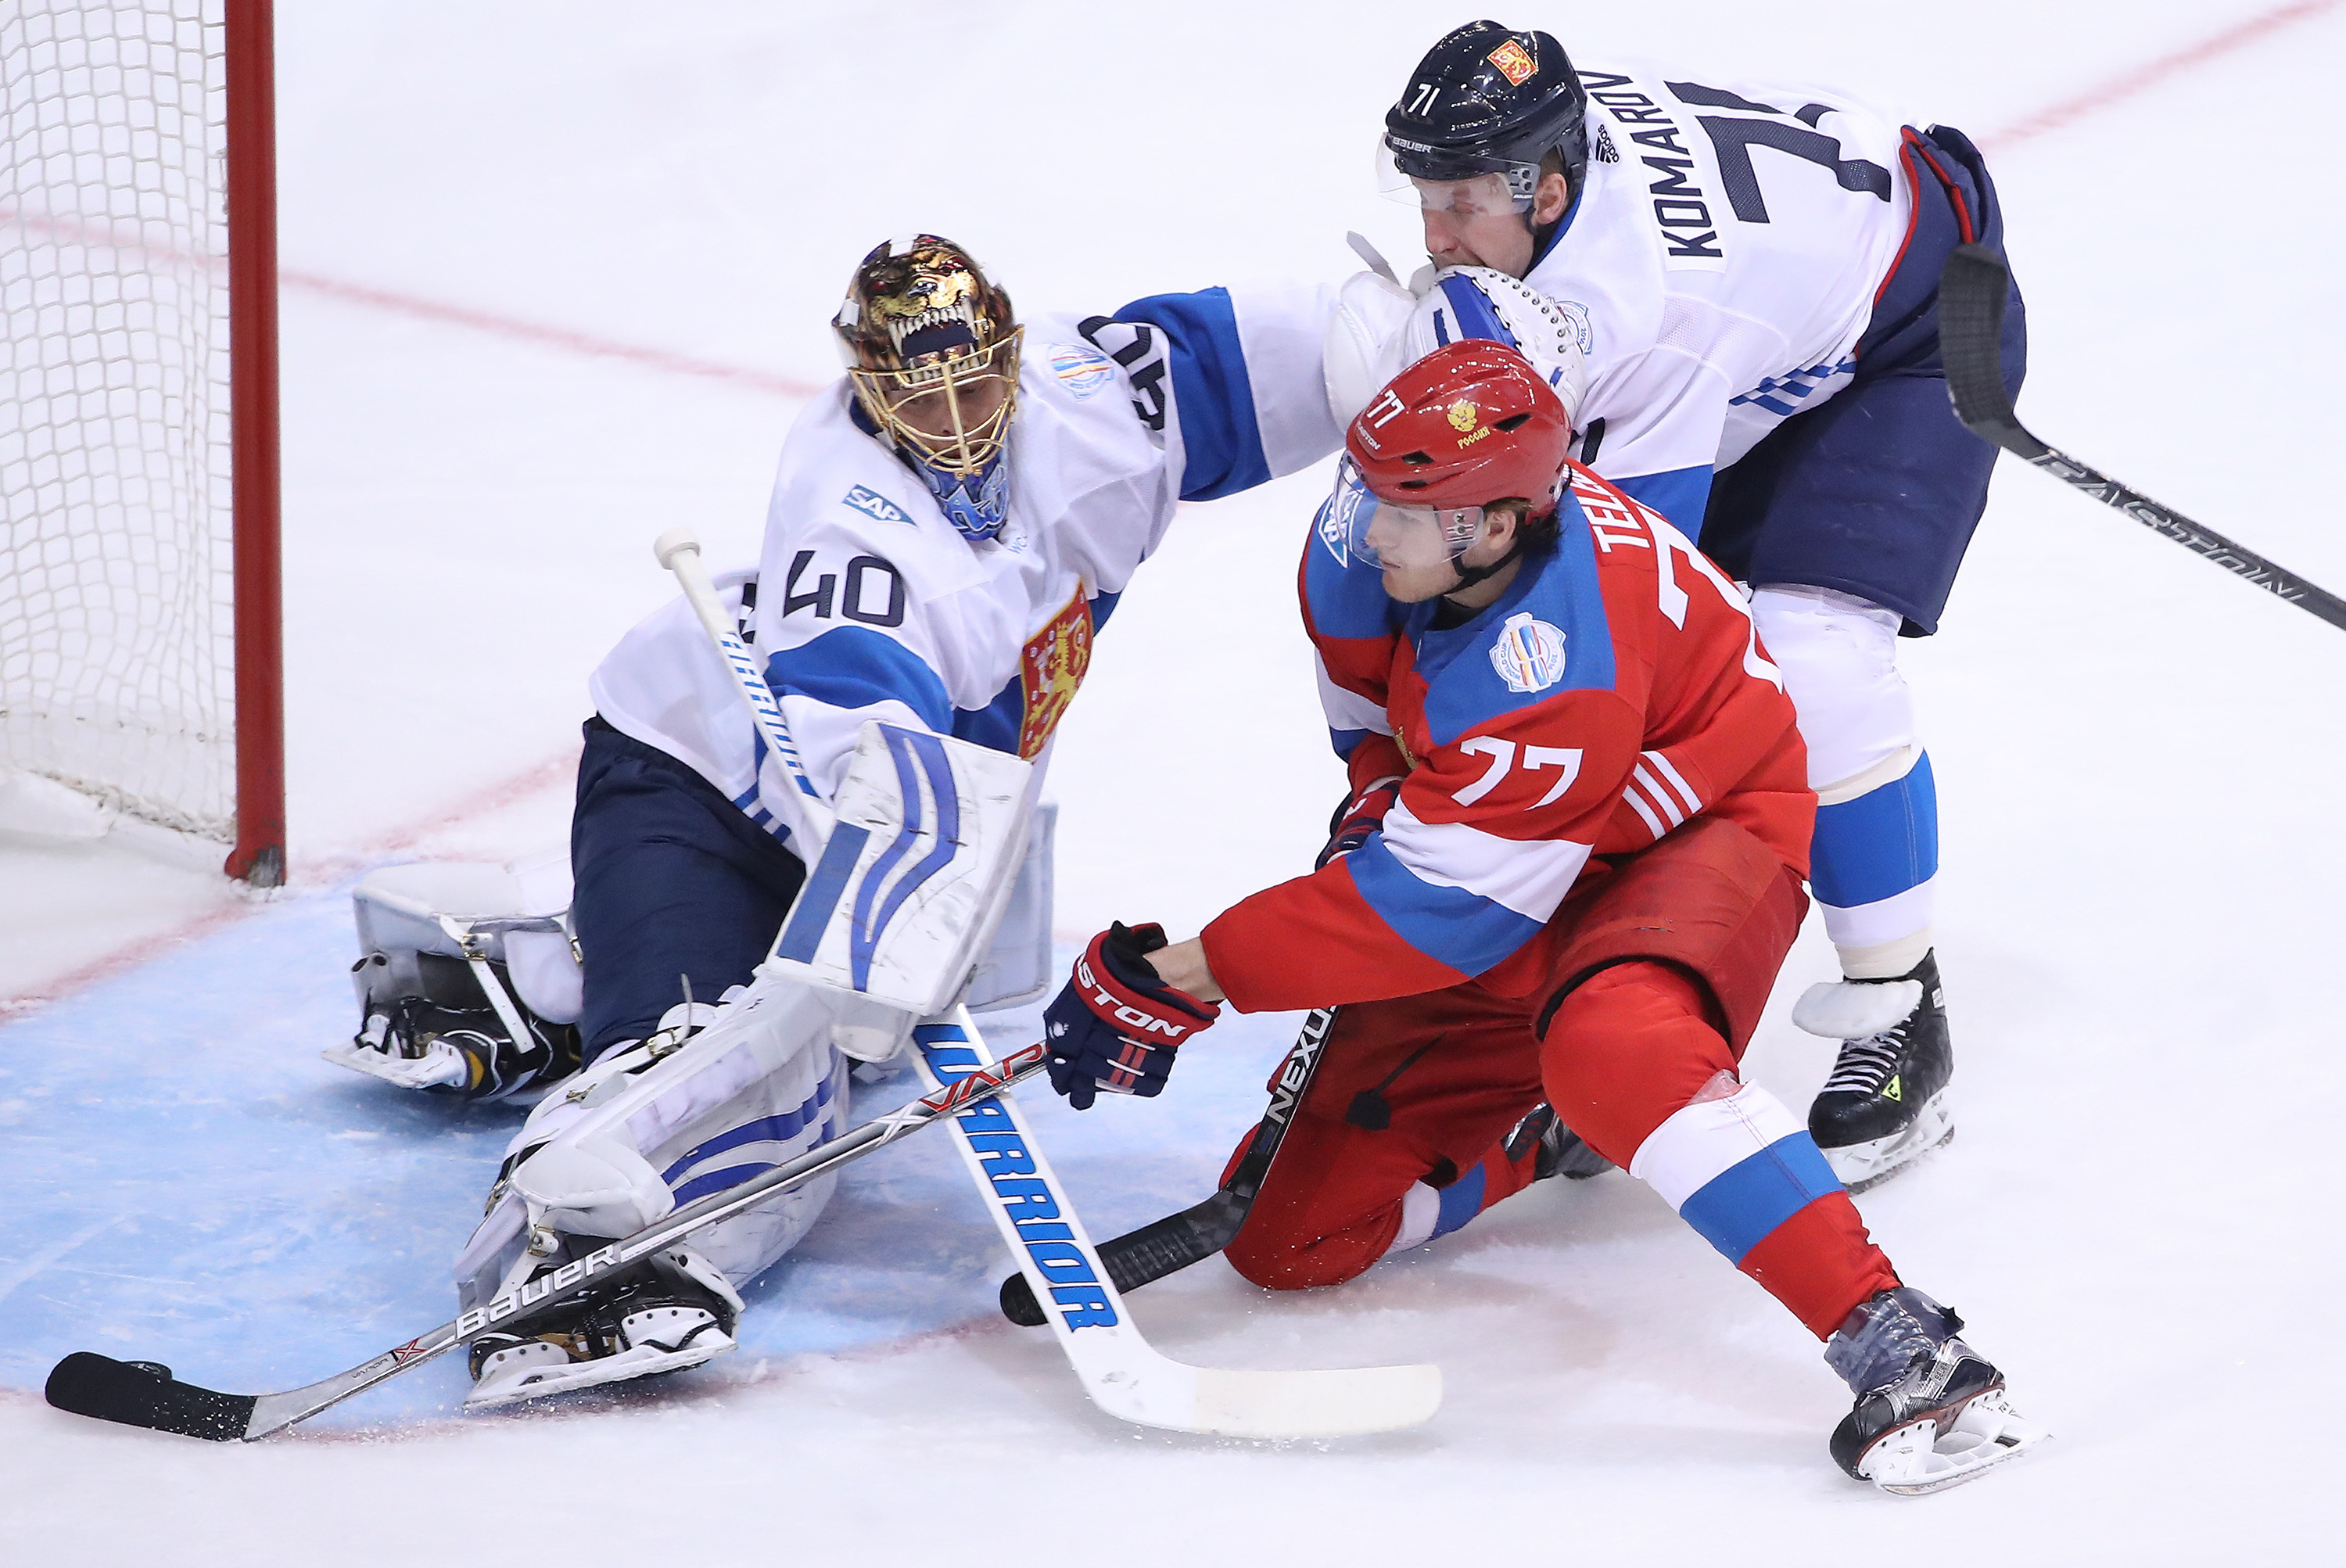 World Cup Of Hockey 2016 Results Scores Highlights And Reaction From Thursday Bleacher Report Latest News Videos And Highlights